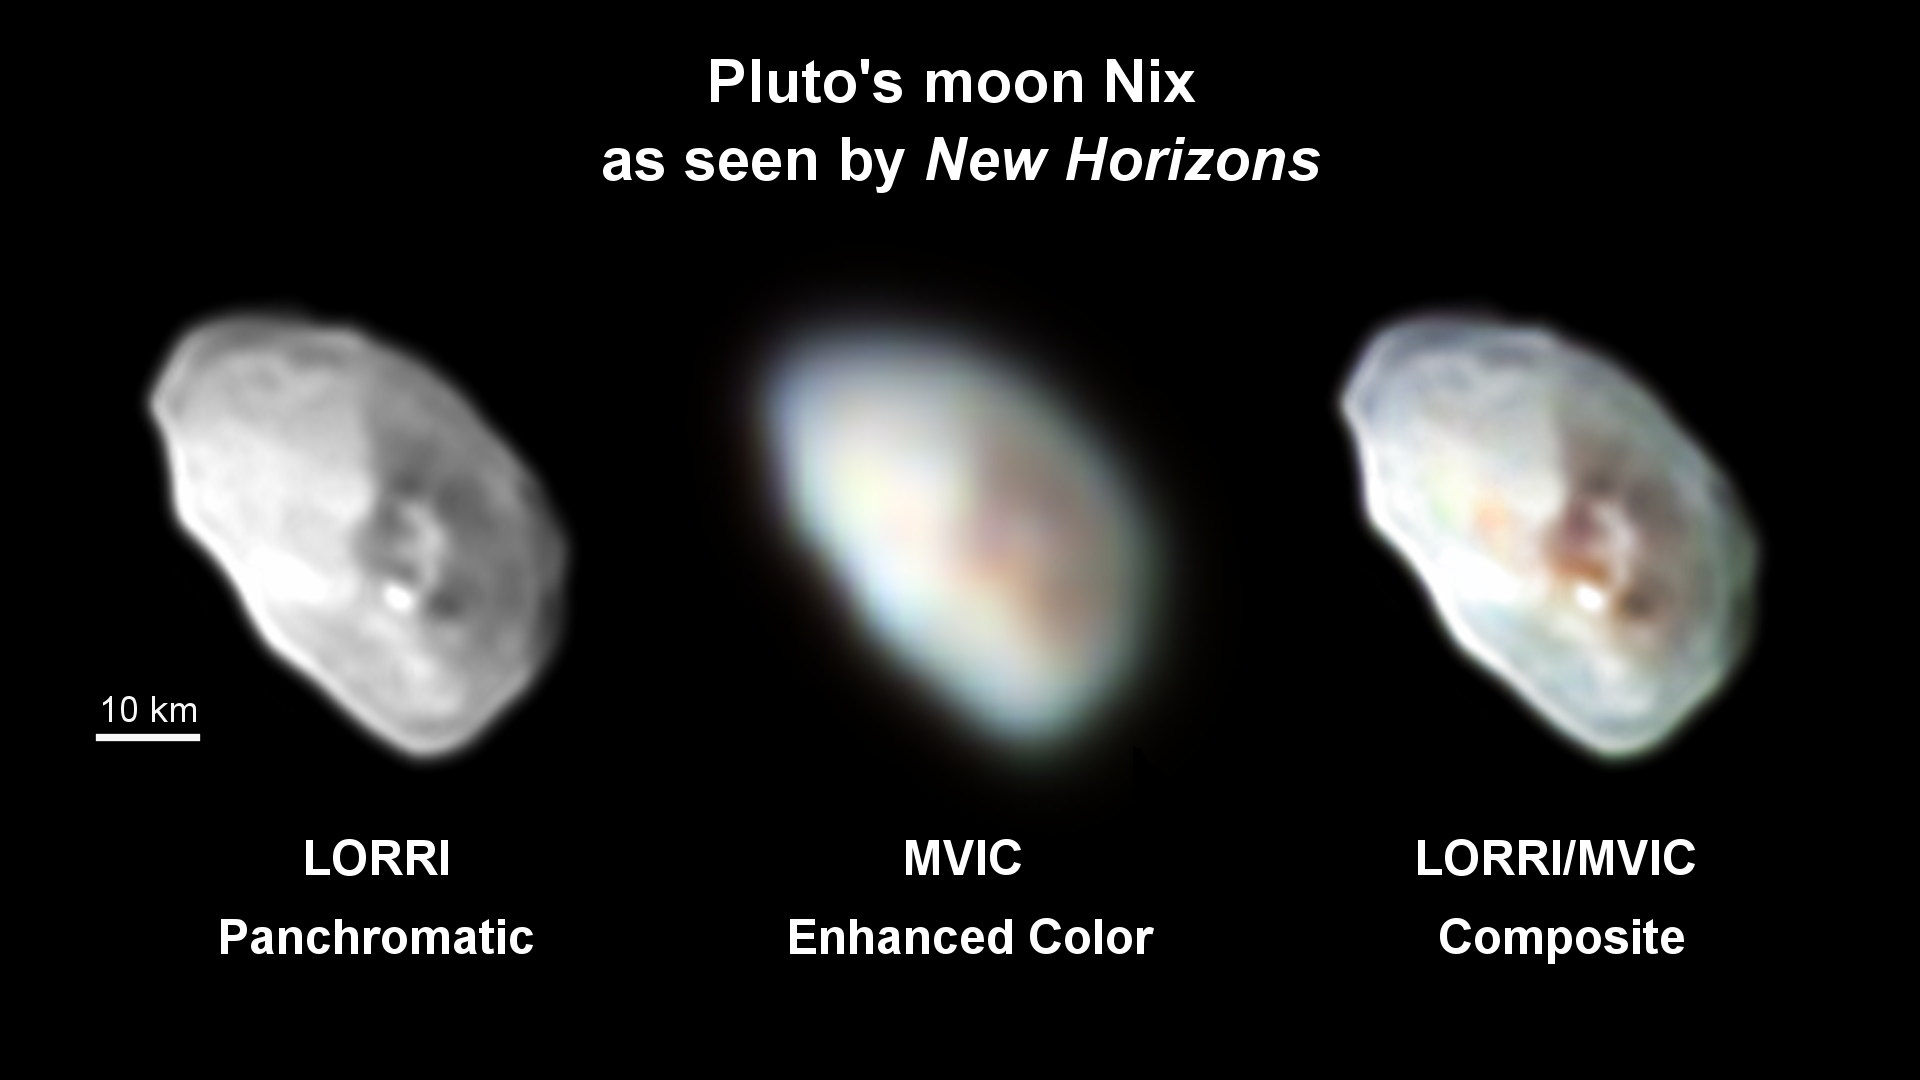 Pluto's moon Nix is shown in high-resolution black-and-white and lower resolution color. Credit: NASA/JHUAPL/SwRI